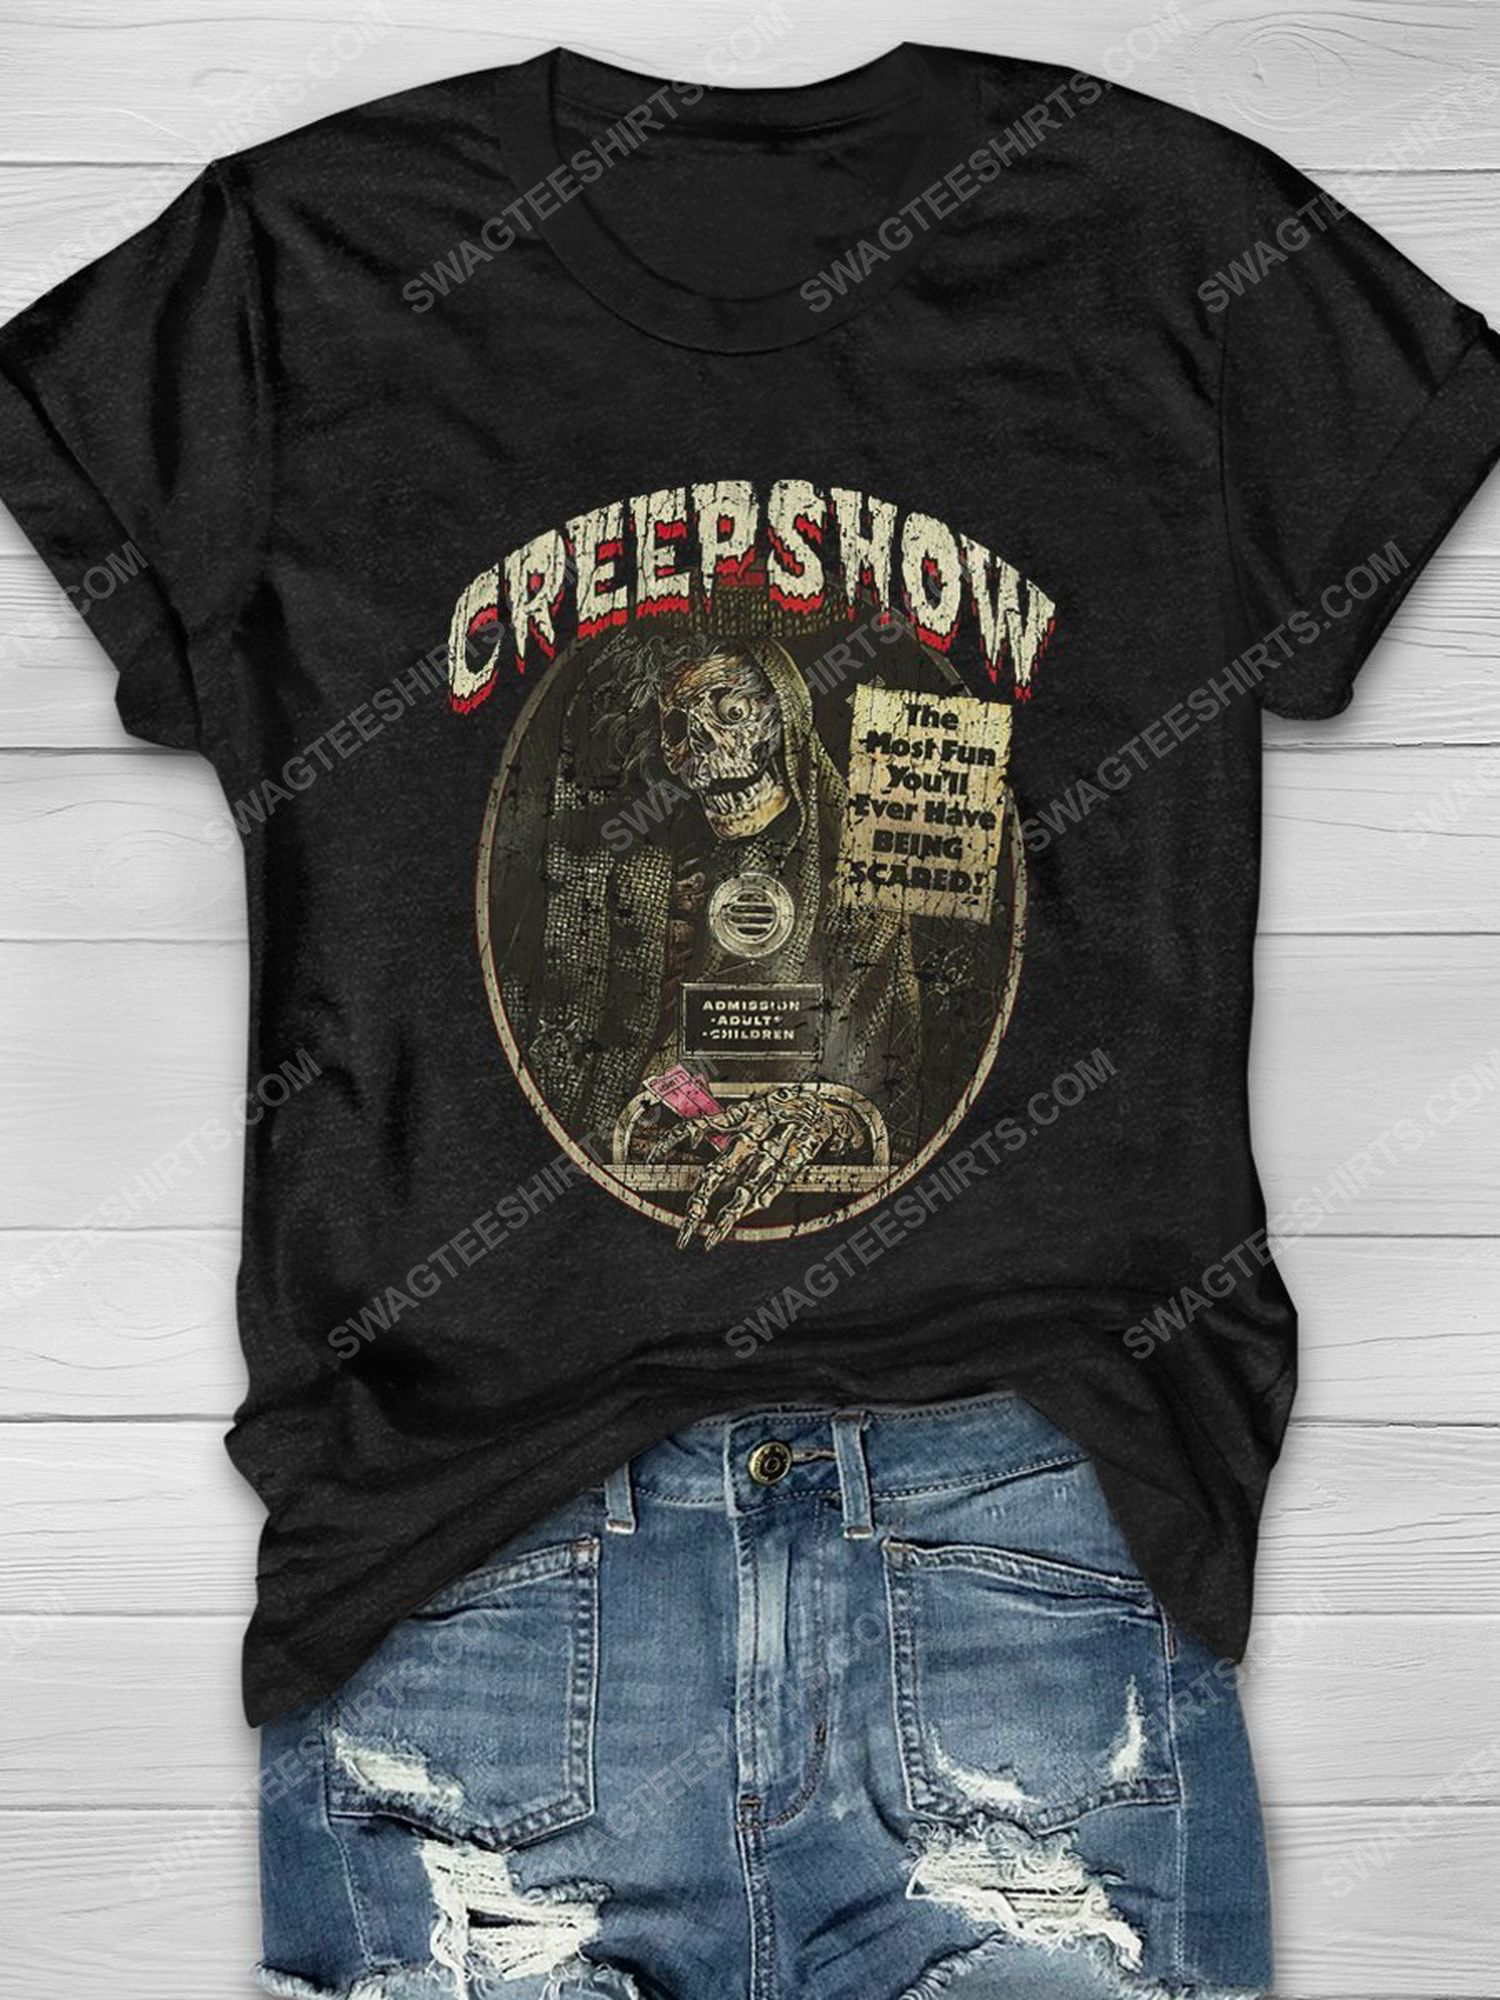 Halloween creepshow the most fun you'll ever have being scared shirt 1 - Copy (2)